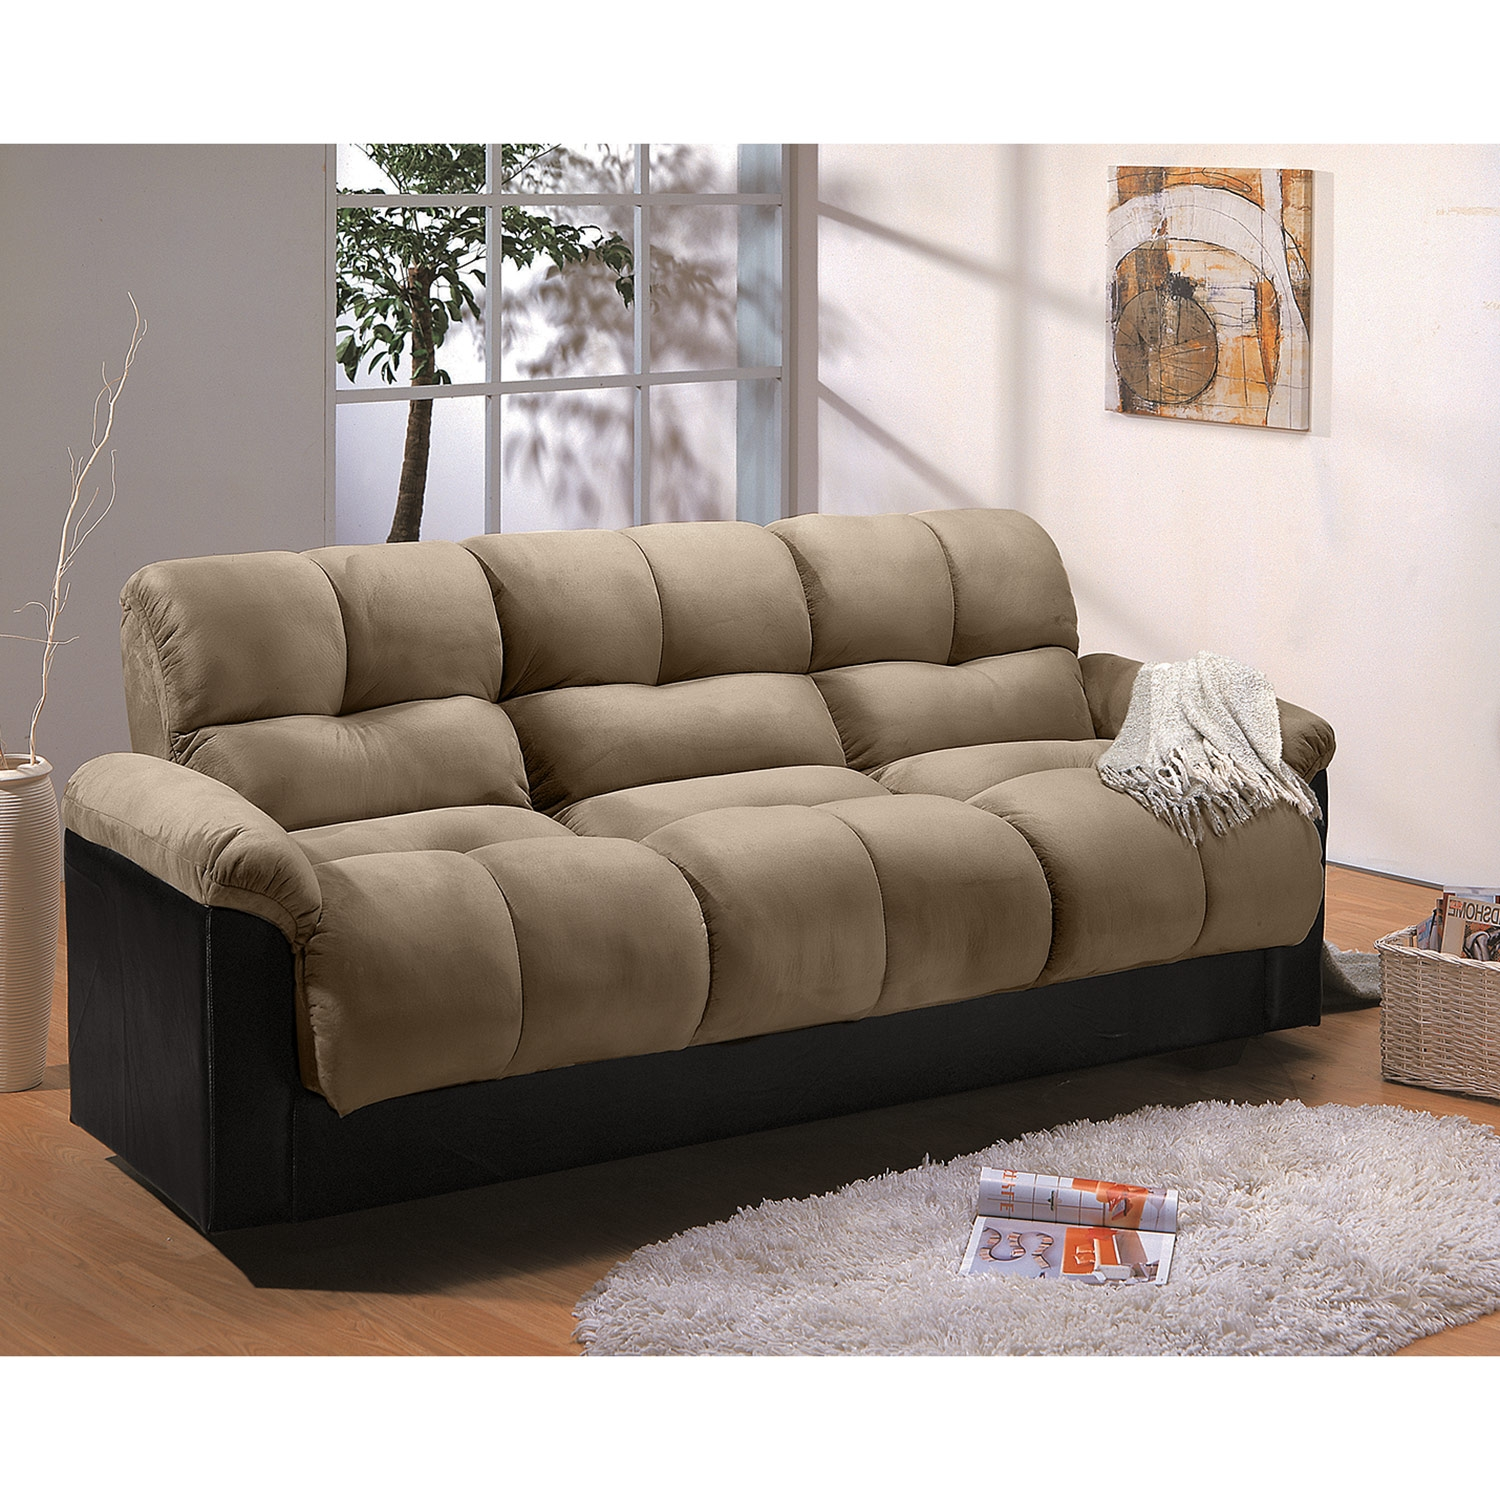 Image of: Sofa Futon Beds Ikea